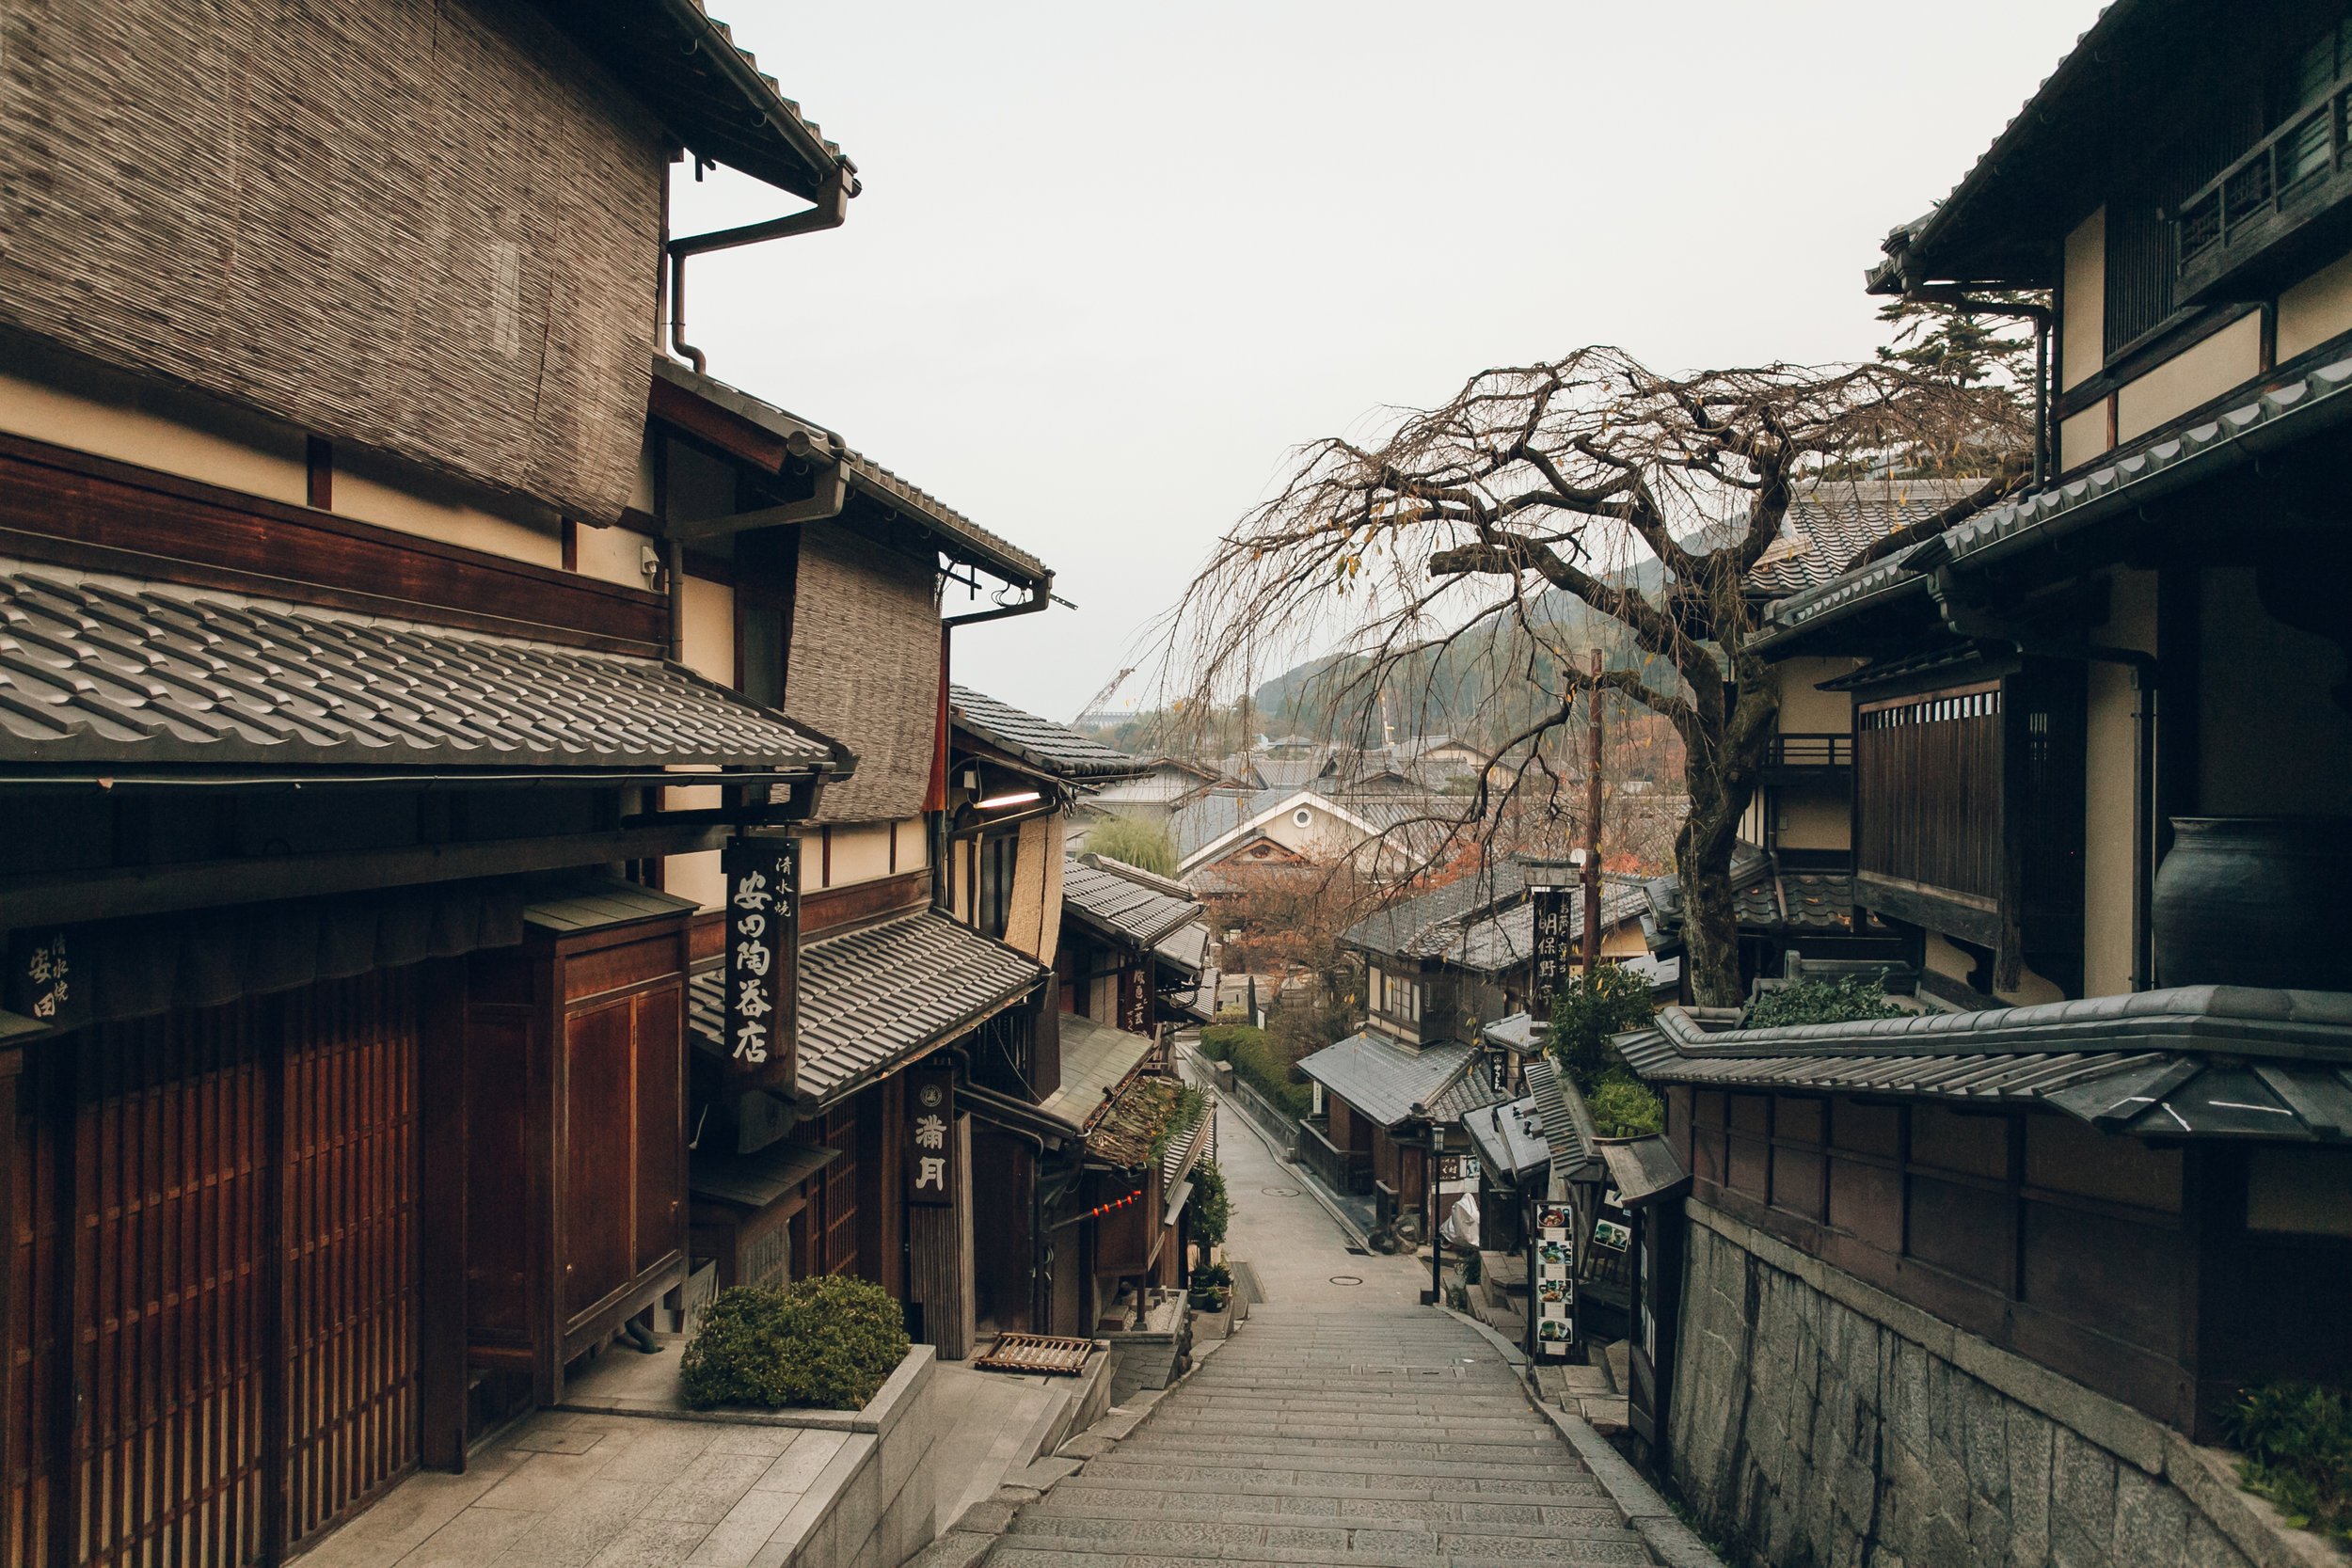 Haarkon in Kyoto, Japan.